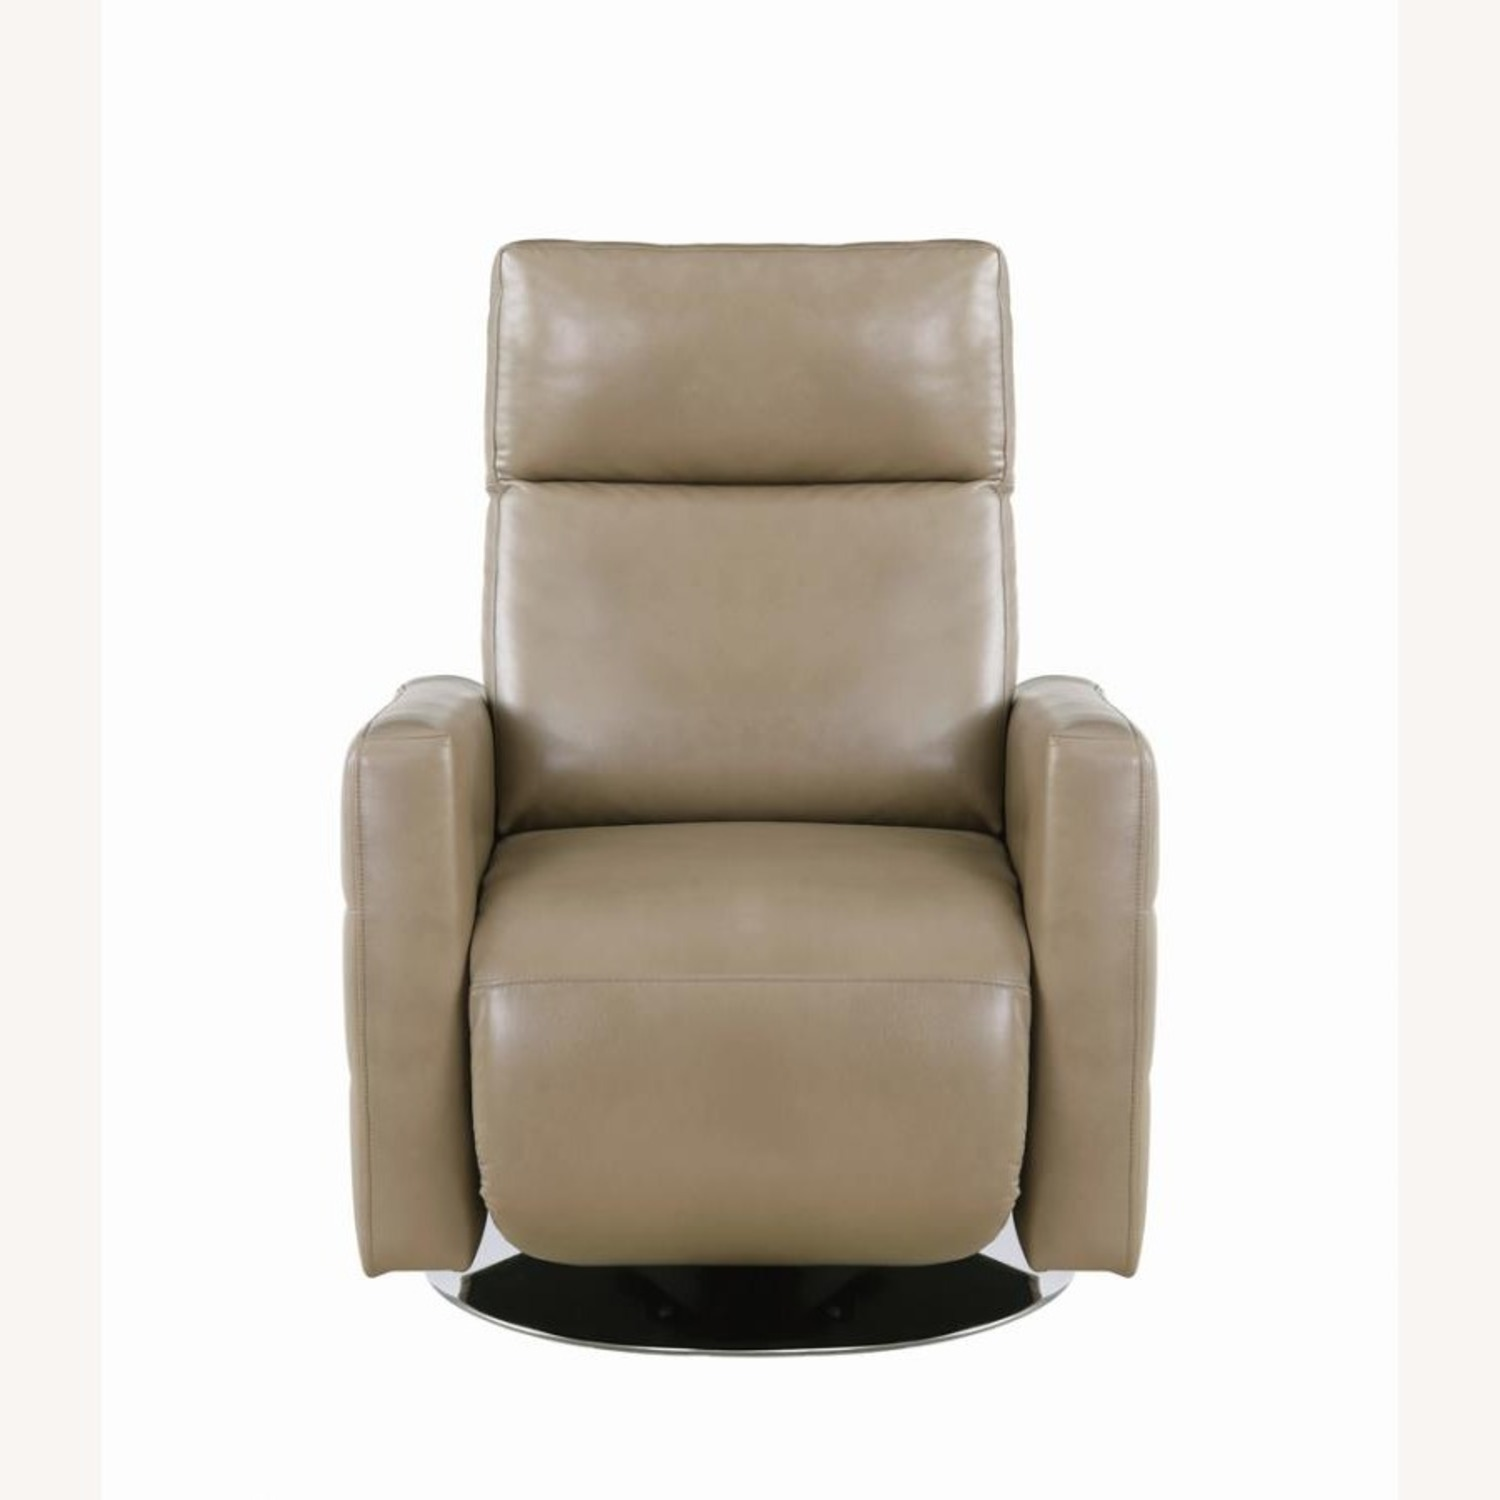 Swivel Recliner Upholstered In Taupe Performance - image-2